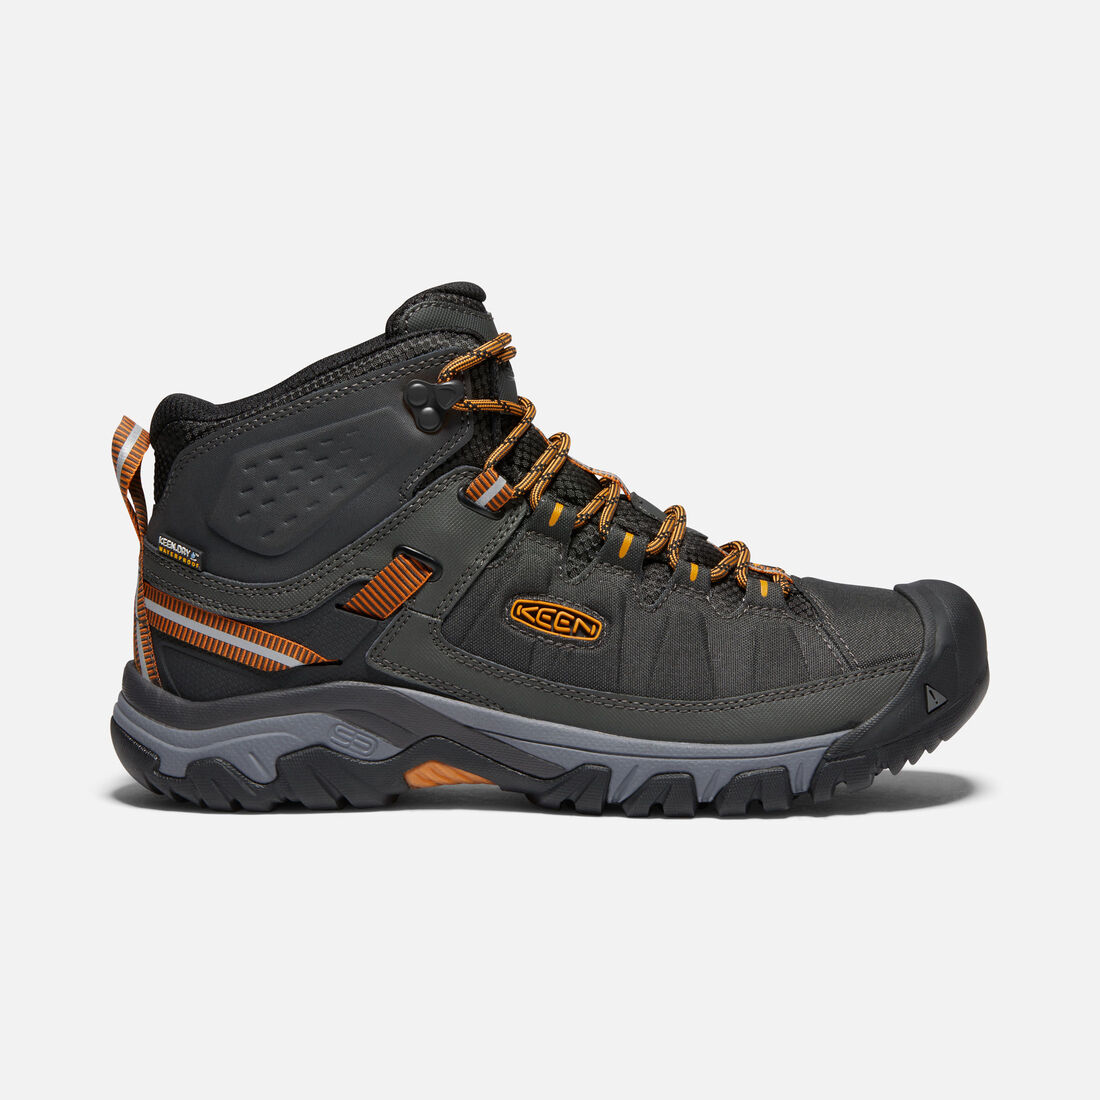 TARGHEE EXP WATERPROOF MID WANDERSTIEFEL FÜR HERREN in RAVEN/INCA GOLD - large view.